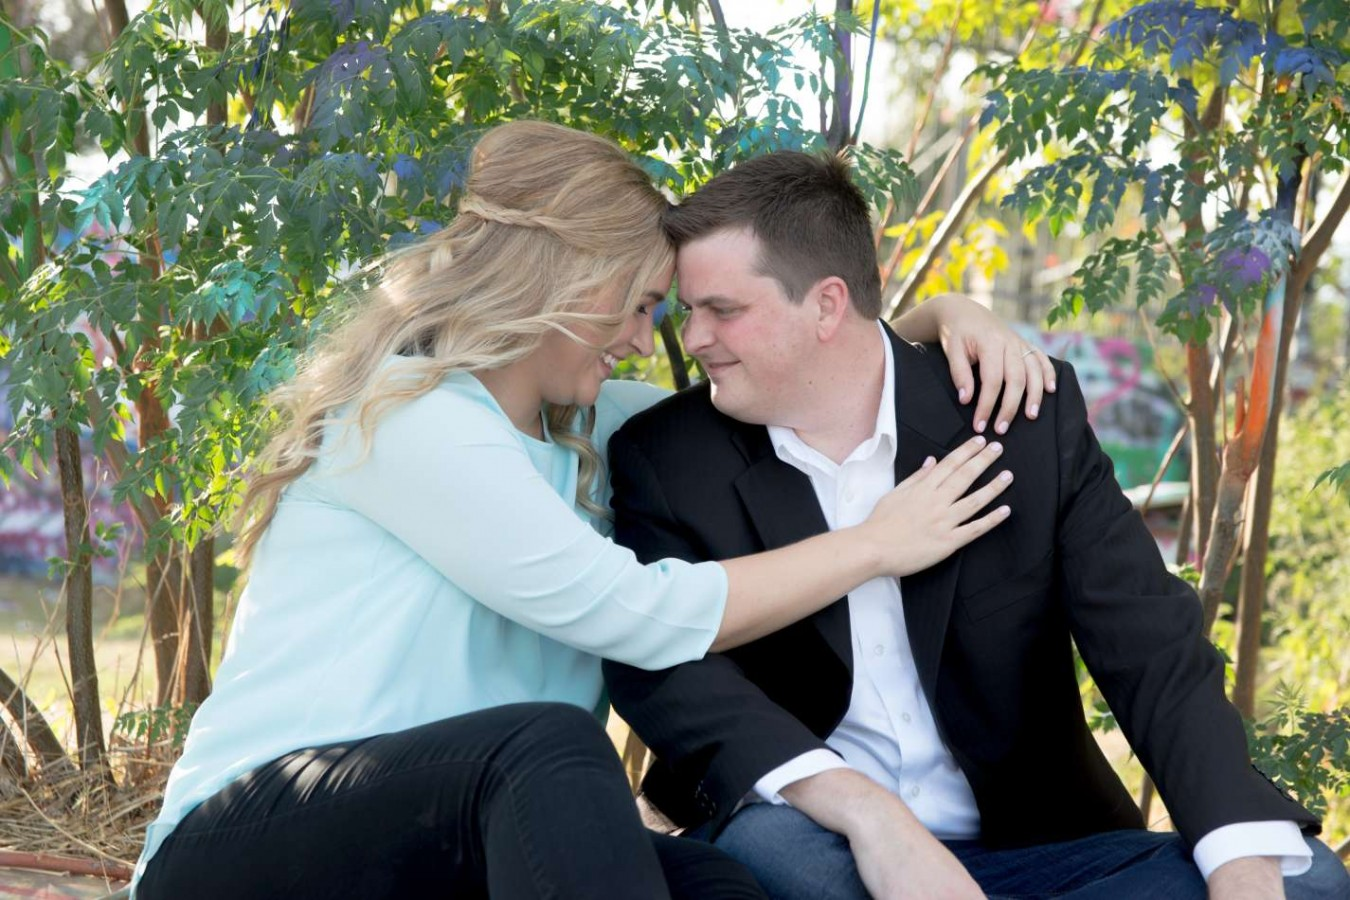 HighDot Studios - Jill and Sean - Engagement Session - Austin - Hope Outdoor Gallery - Long Center (4)